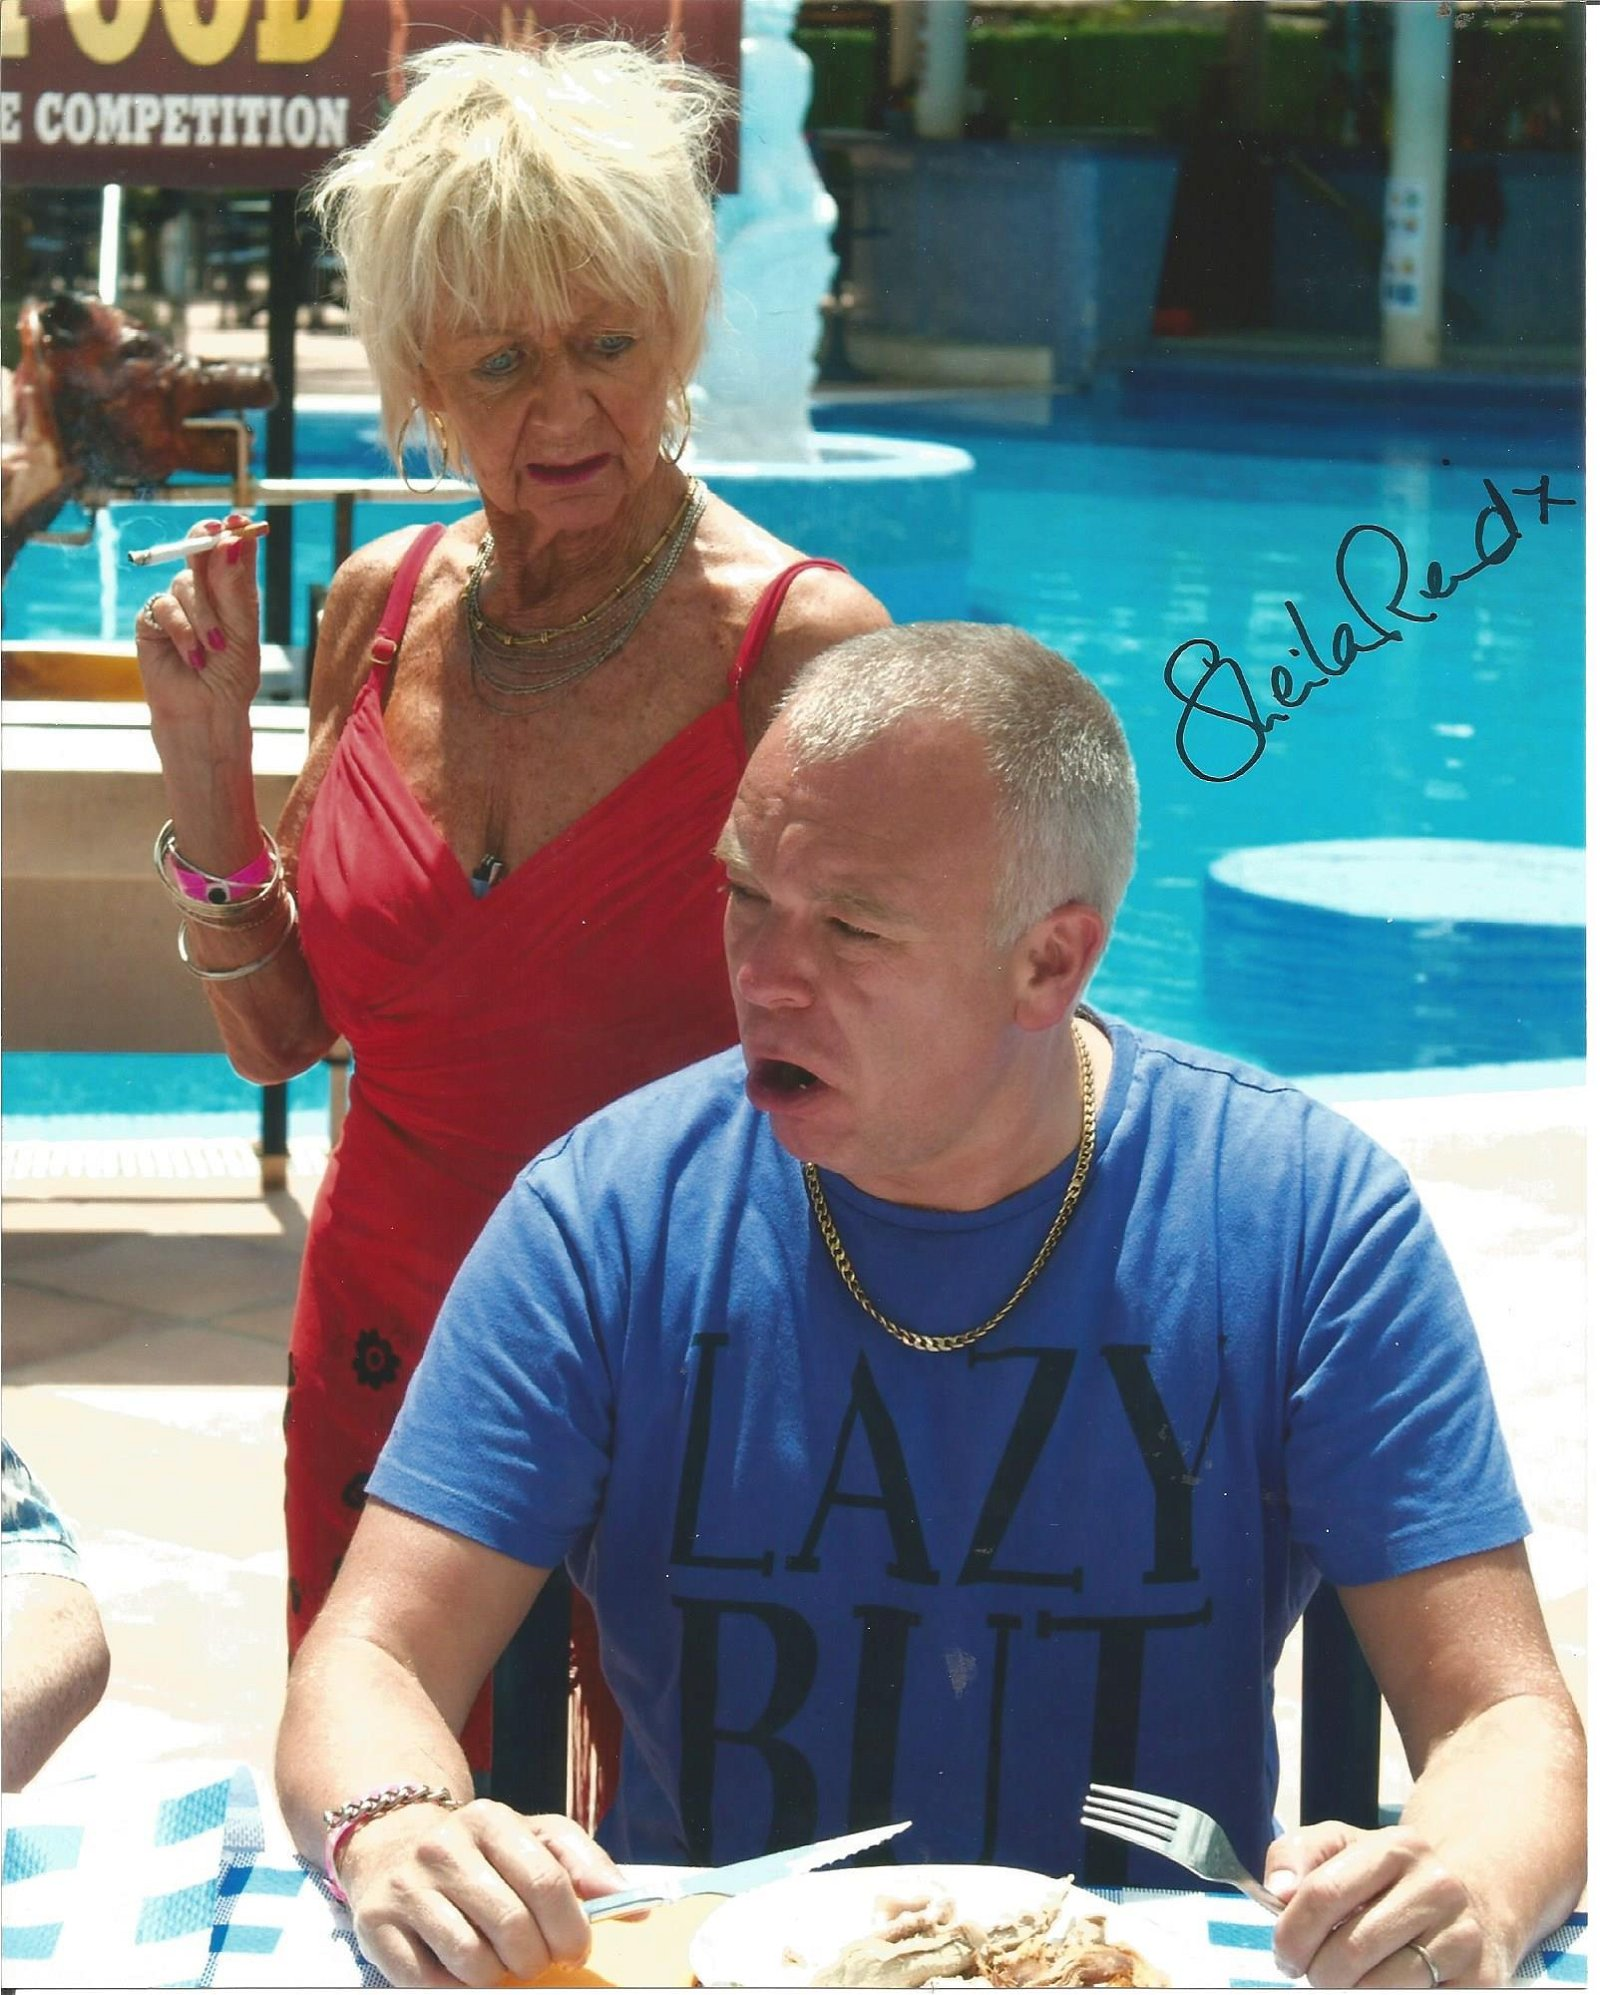 Sheila Reid signed 10x8 colour photo from Benidorm. We